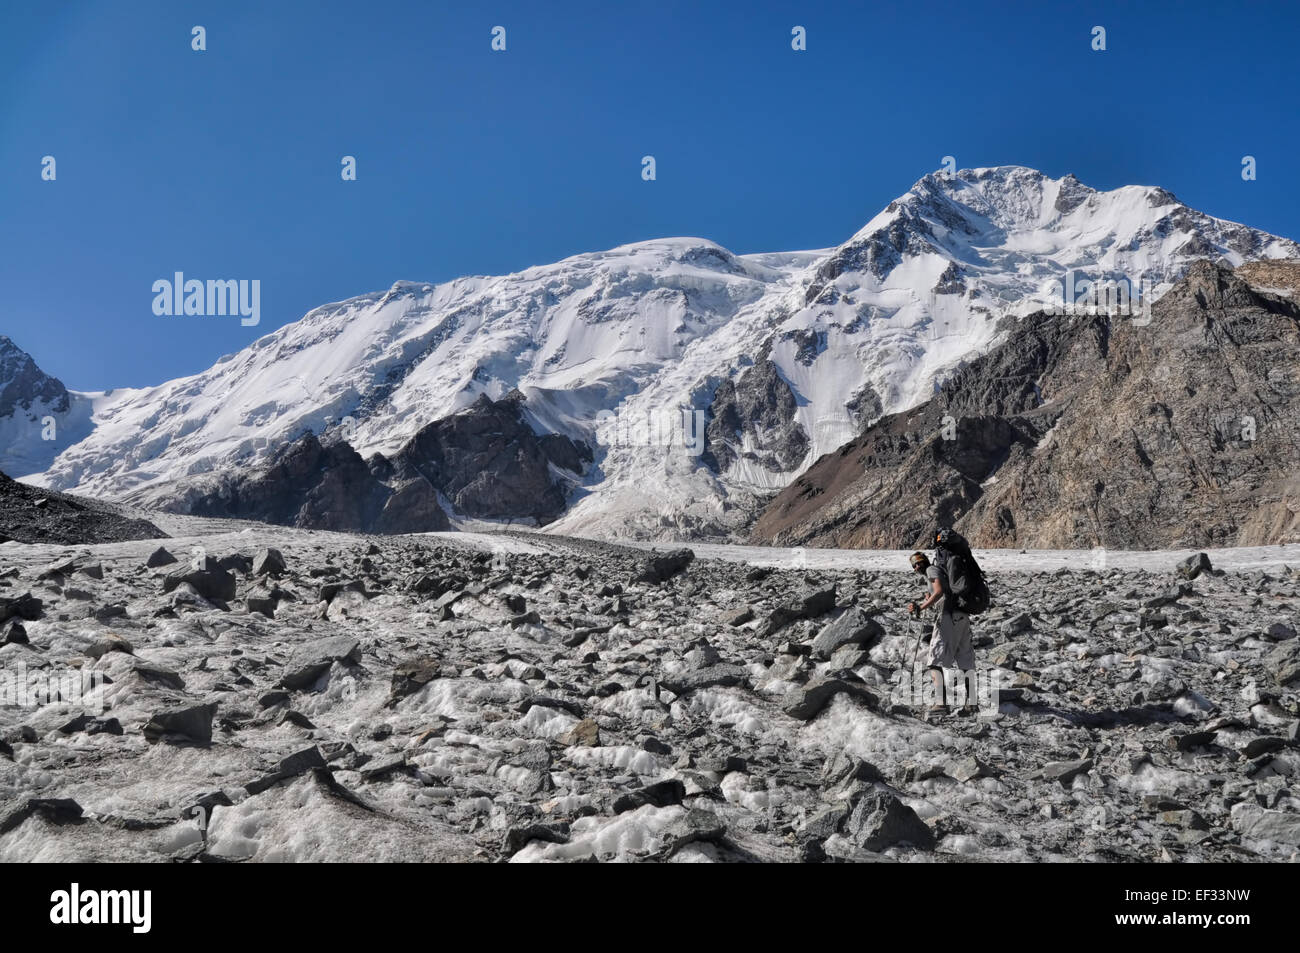 Young adventurer with backpack on glacier below snow-covered highest peaks in Tien-Shan mountain range in Kyrgyzstan - Stock Image